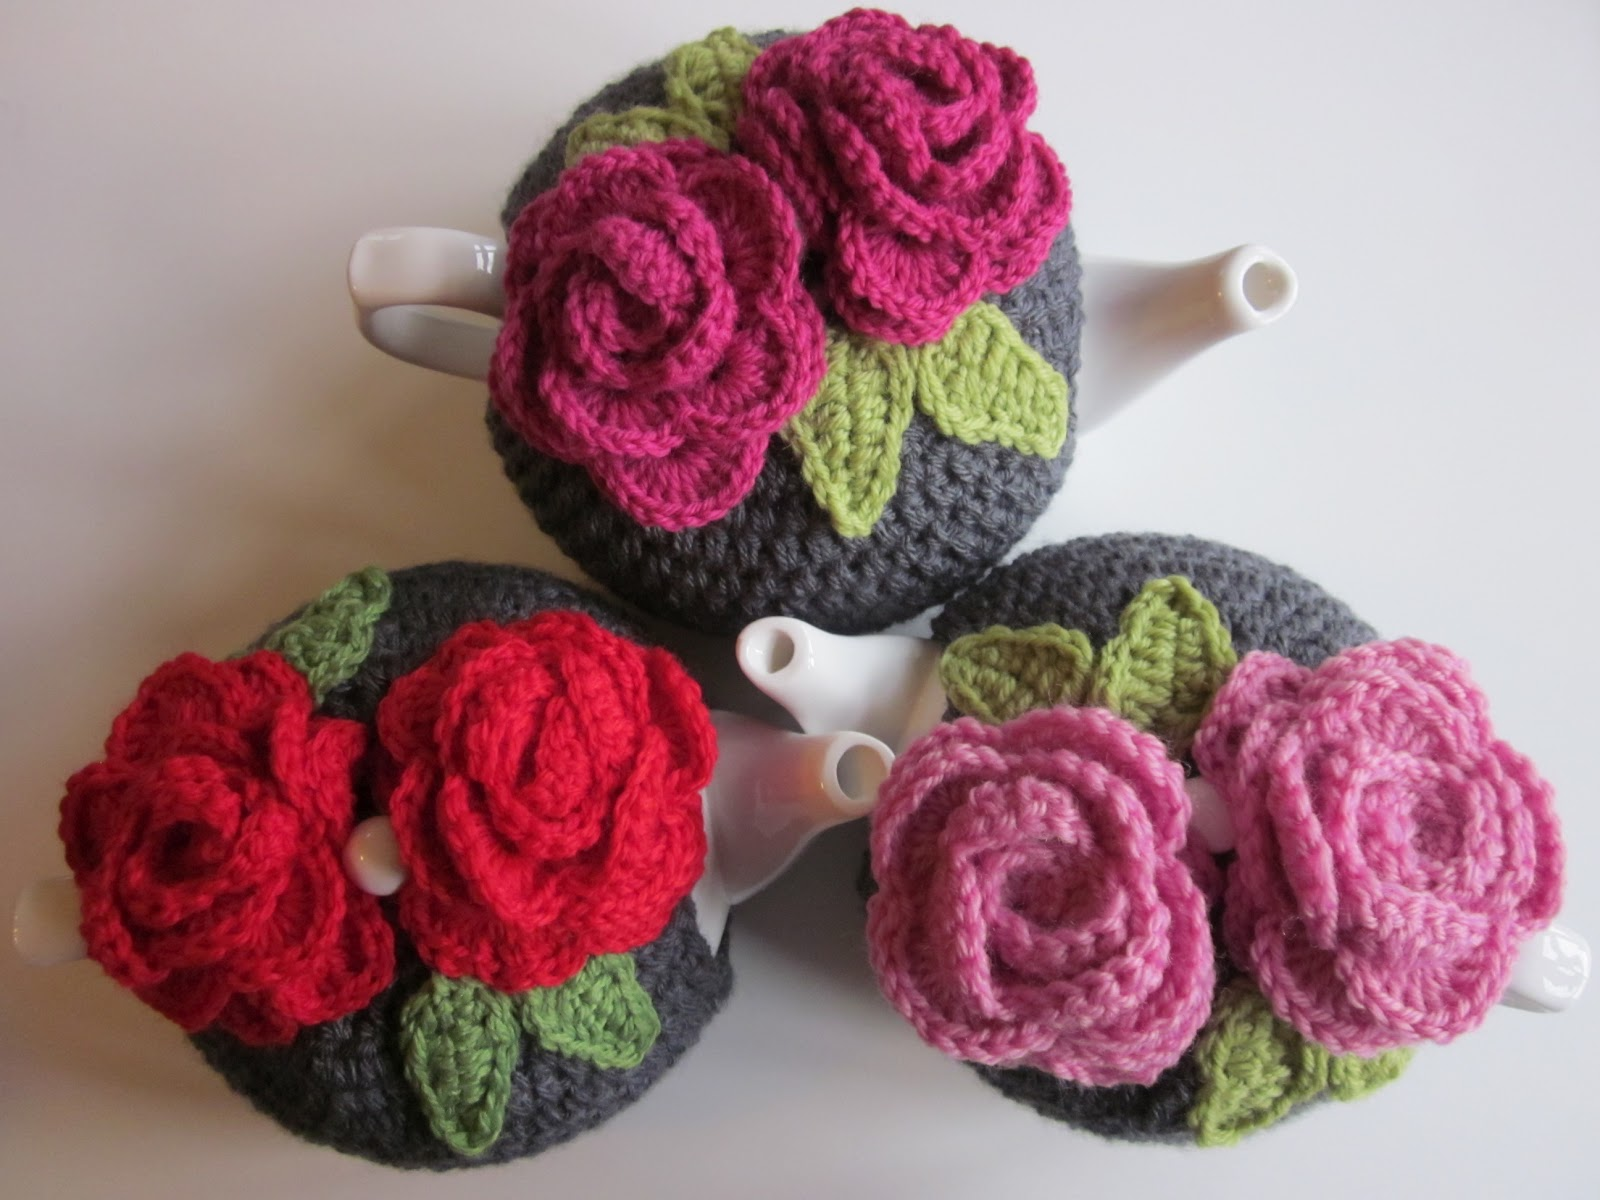 tea cosy template - tea cosies on pinterest tea cozy knitted tea cosies and